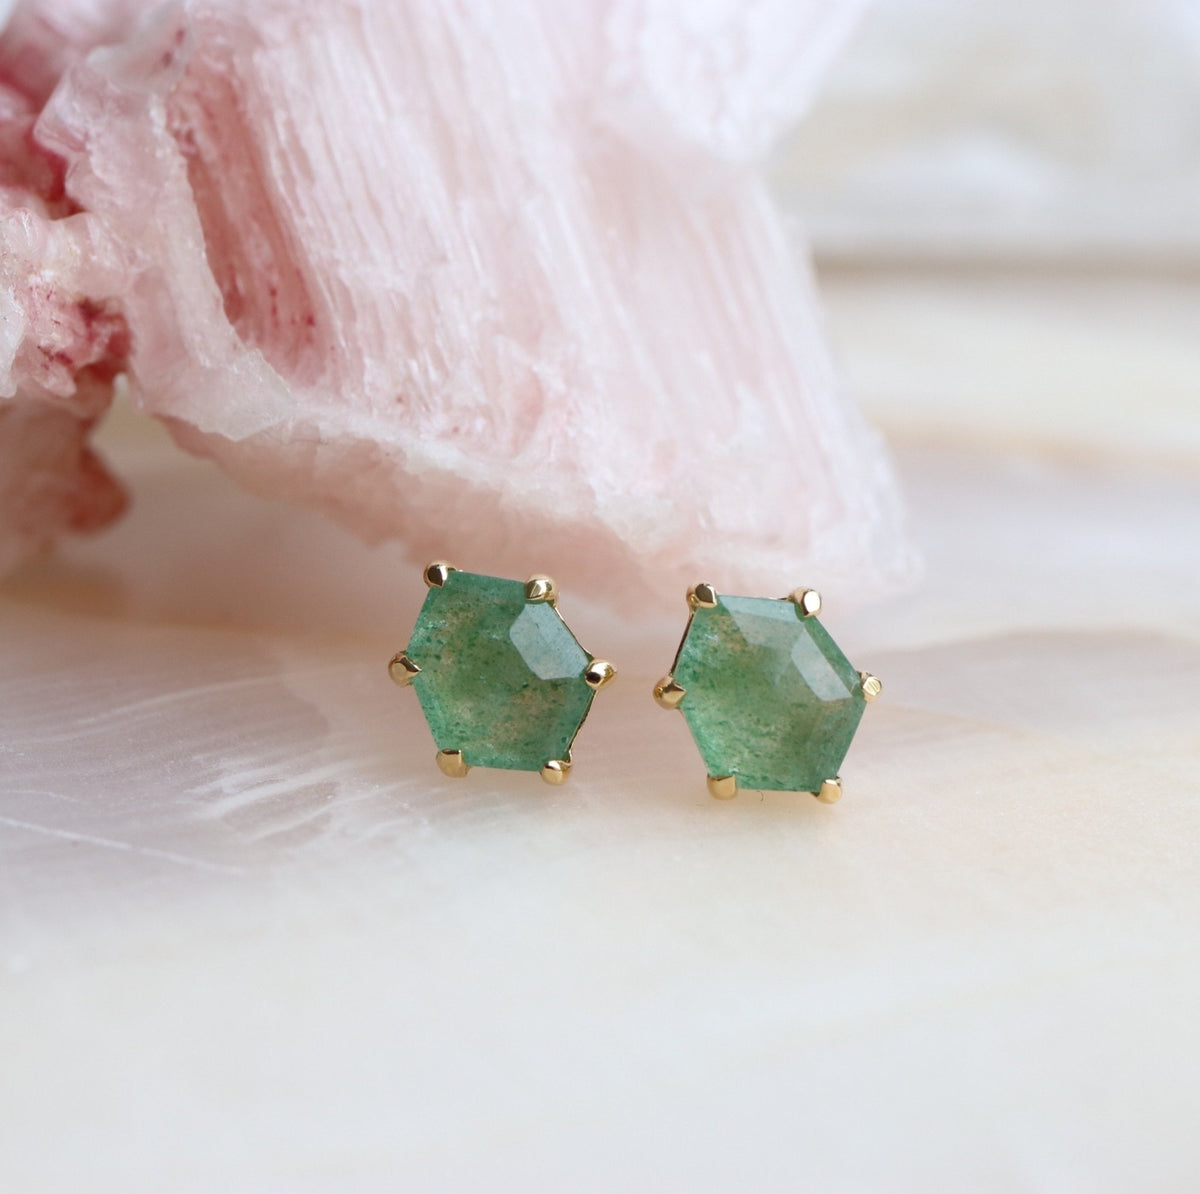 MINI HONOUR SHIELD STUD EARRINGS - GREEN ONYX & GOLD - SO PRETTY CARA COTTER